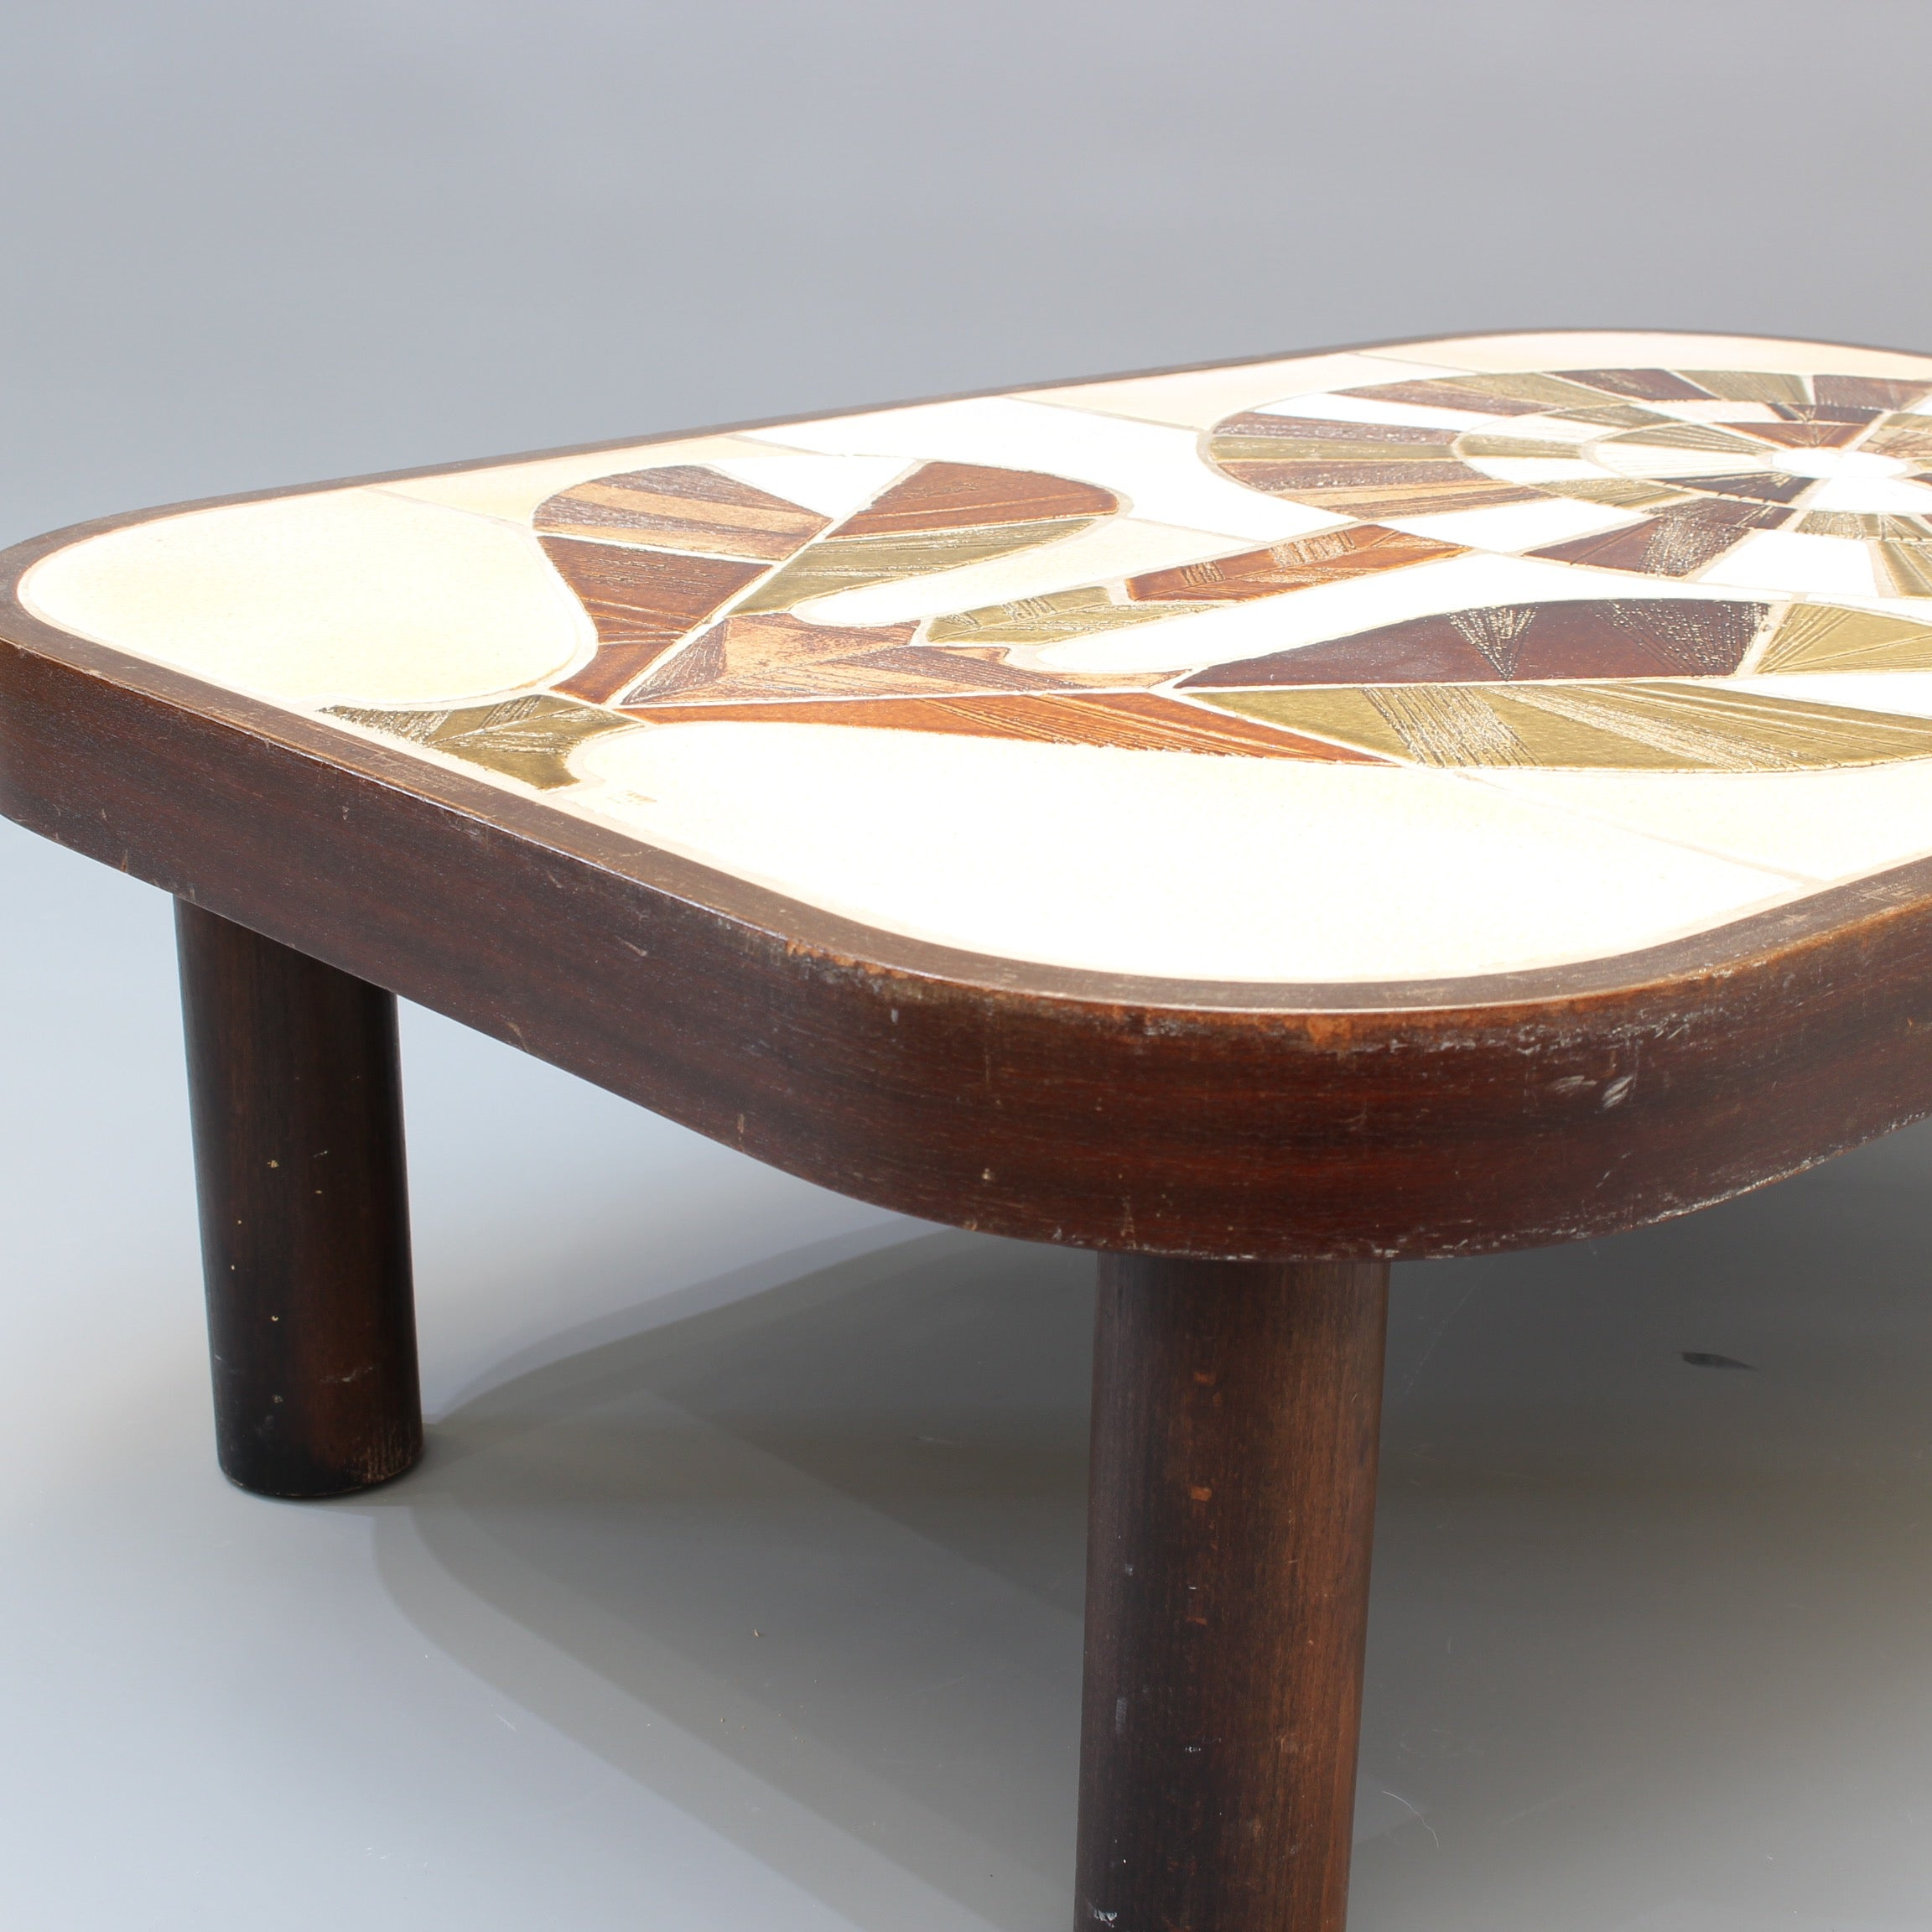 Ceramic Tiled Coffee Table by Roger Capron (circa 1970s)